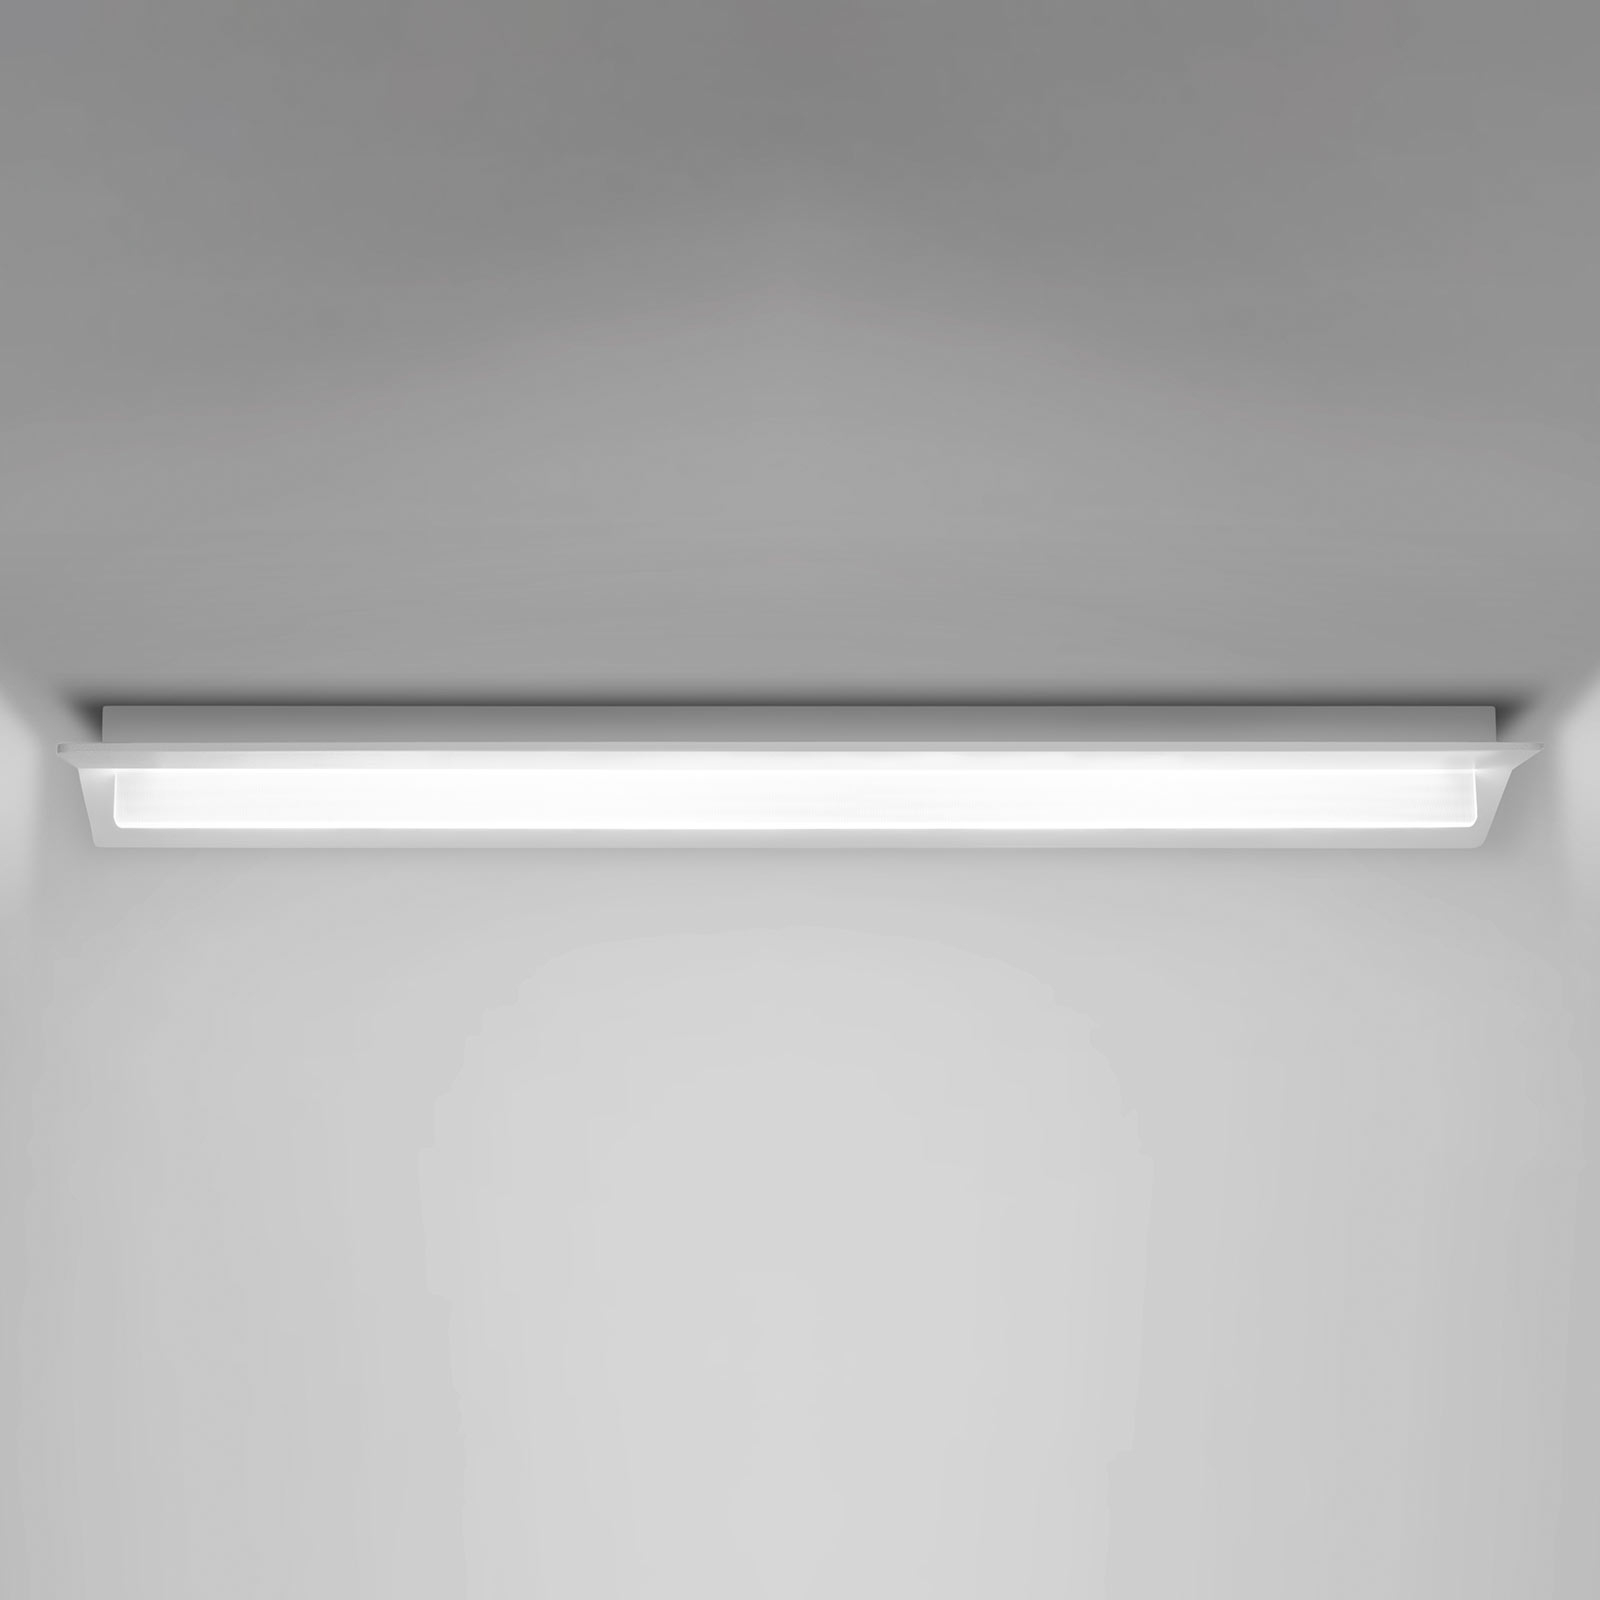 Flurry LED-taklampe, 70 cm, hvit